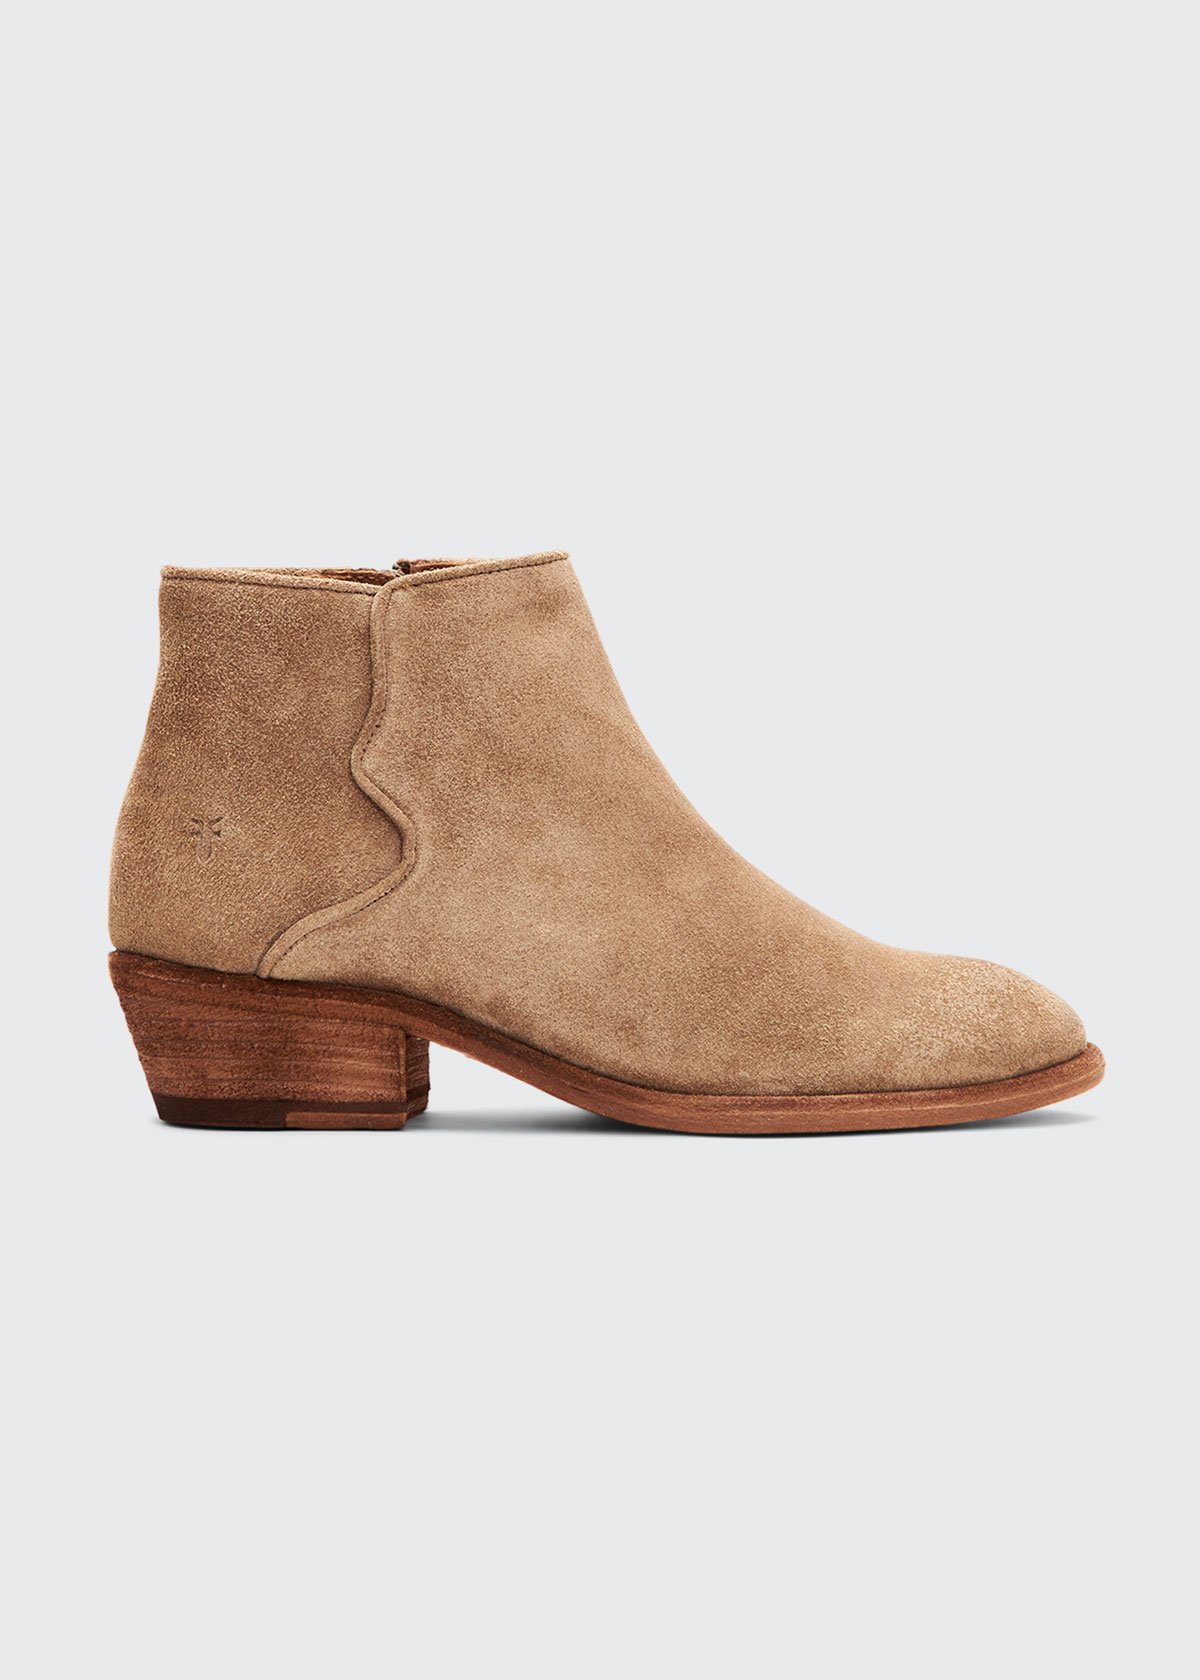 Frye Boots CARSON PIPING SUEDE BOOTIES